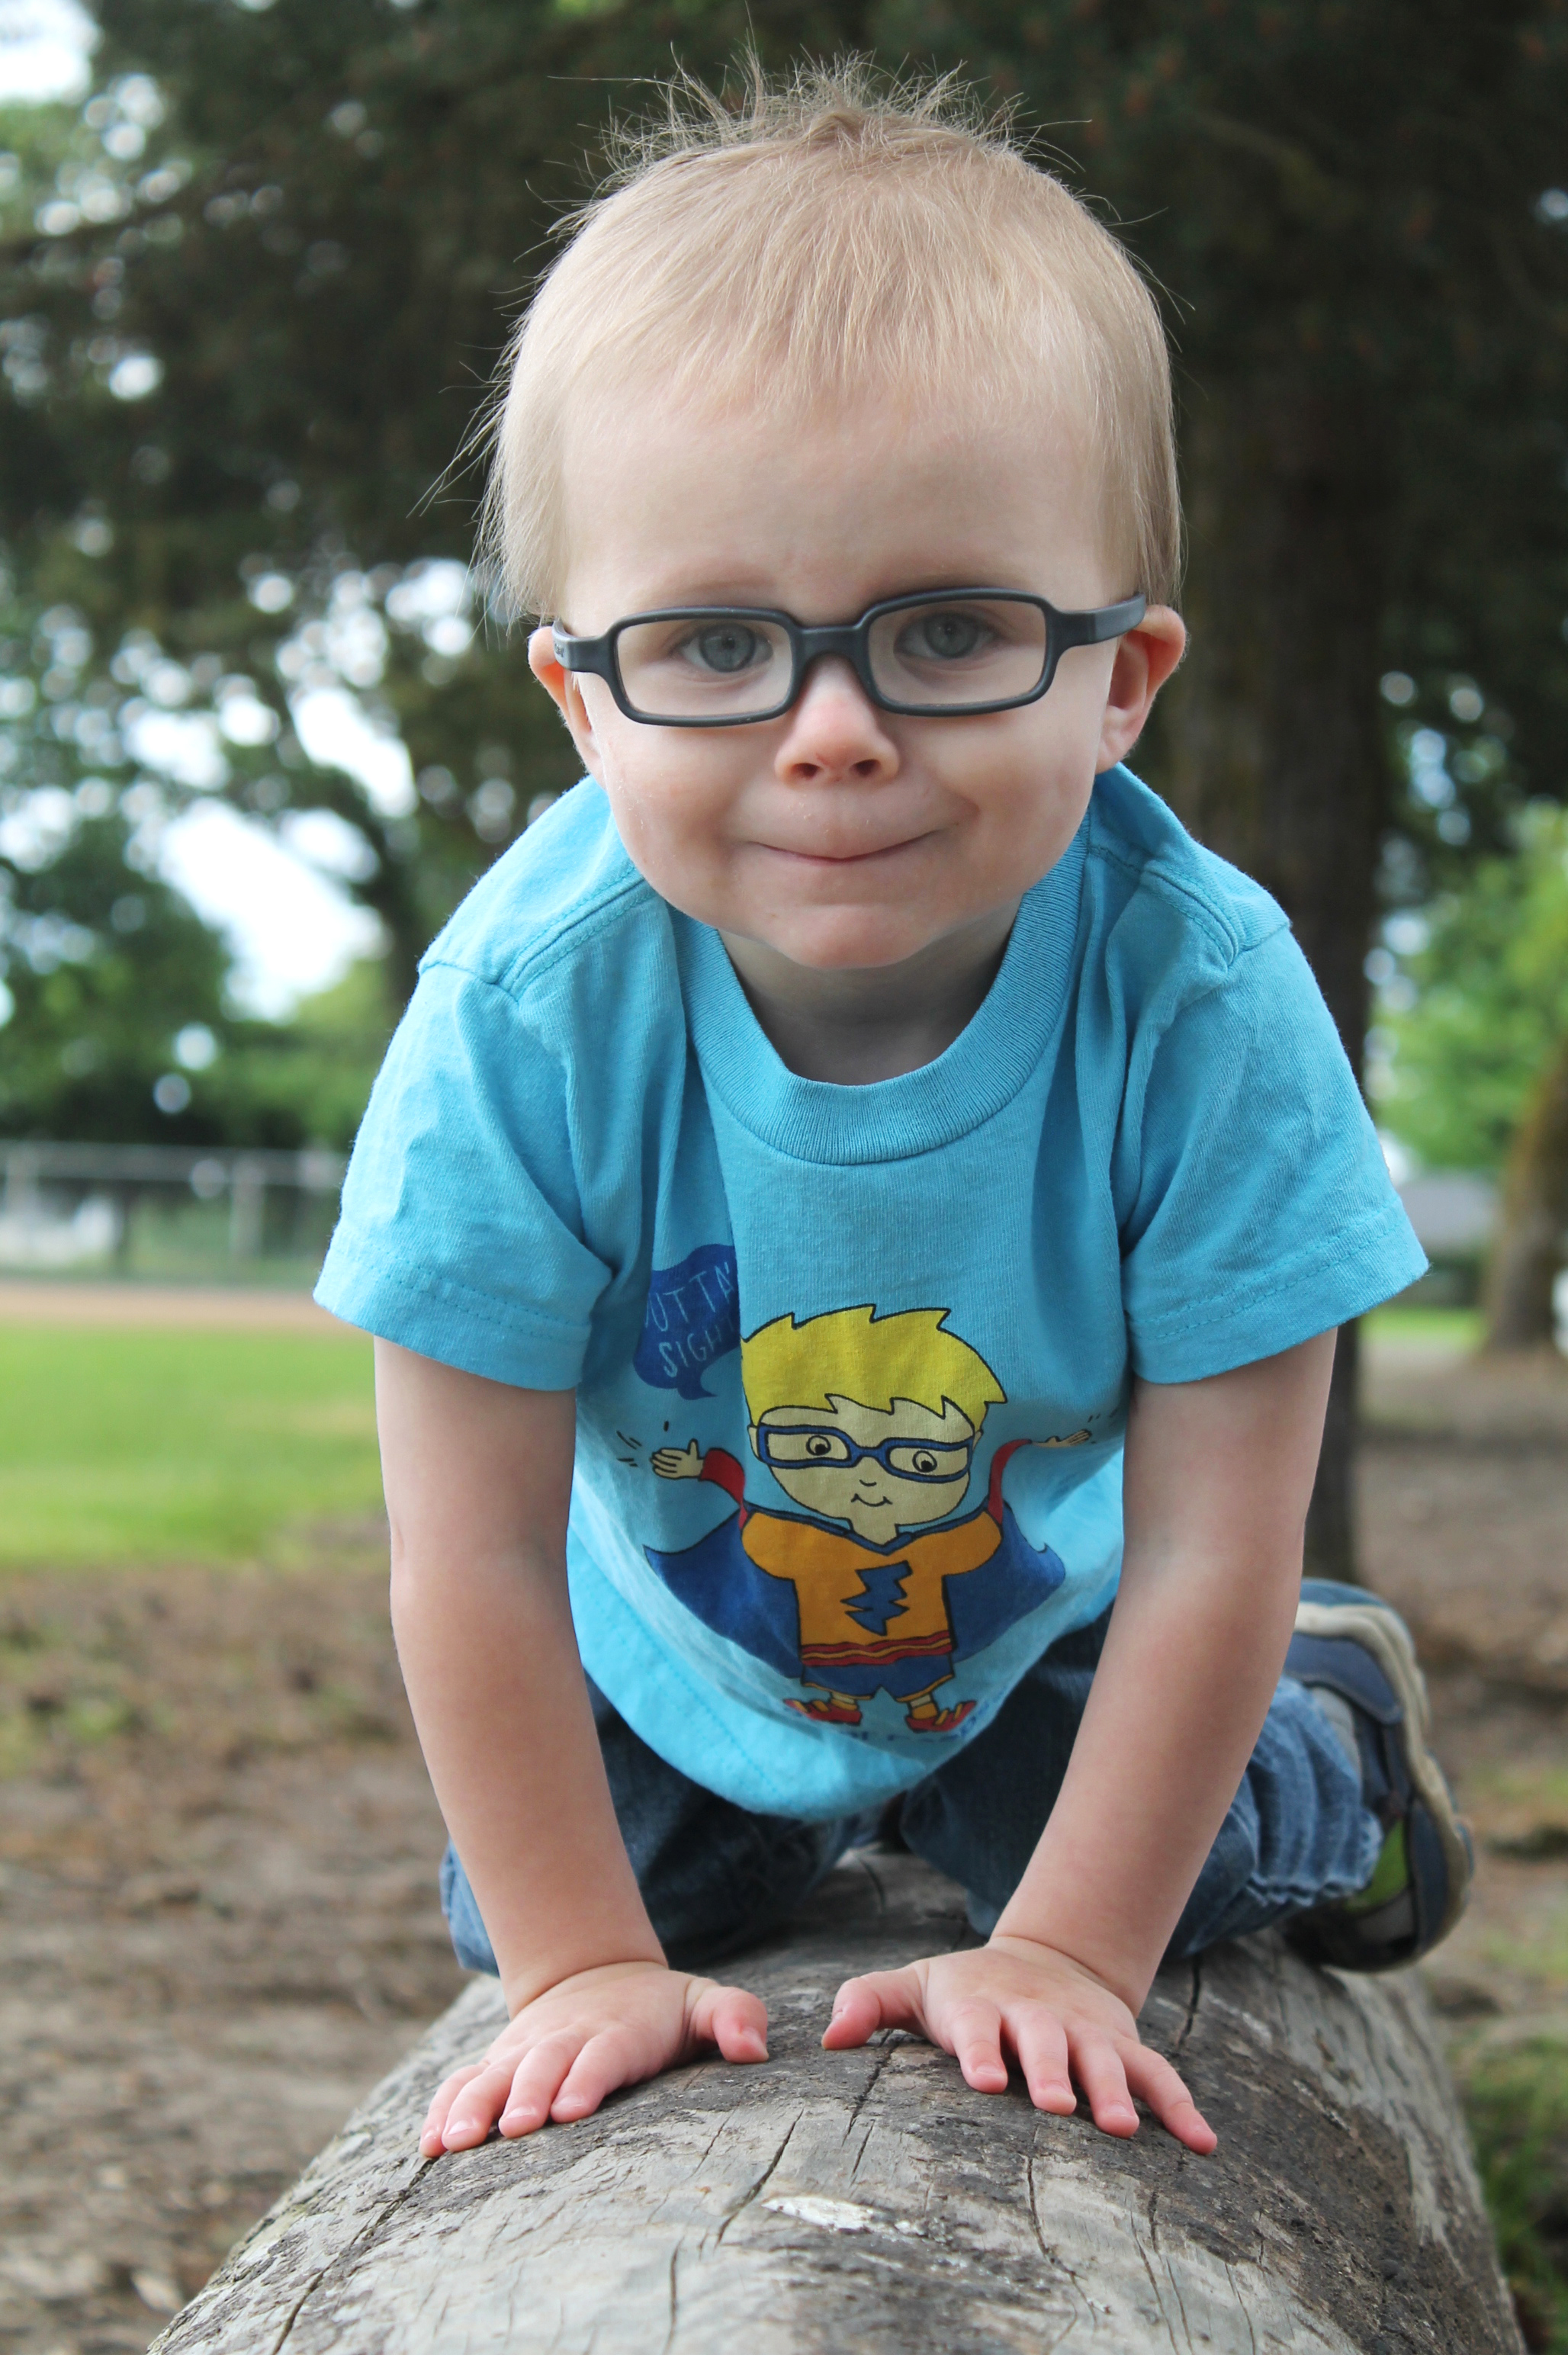 68e1919fee7 How to take Photos of kids in Glasses - Eye Power Kids Wear